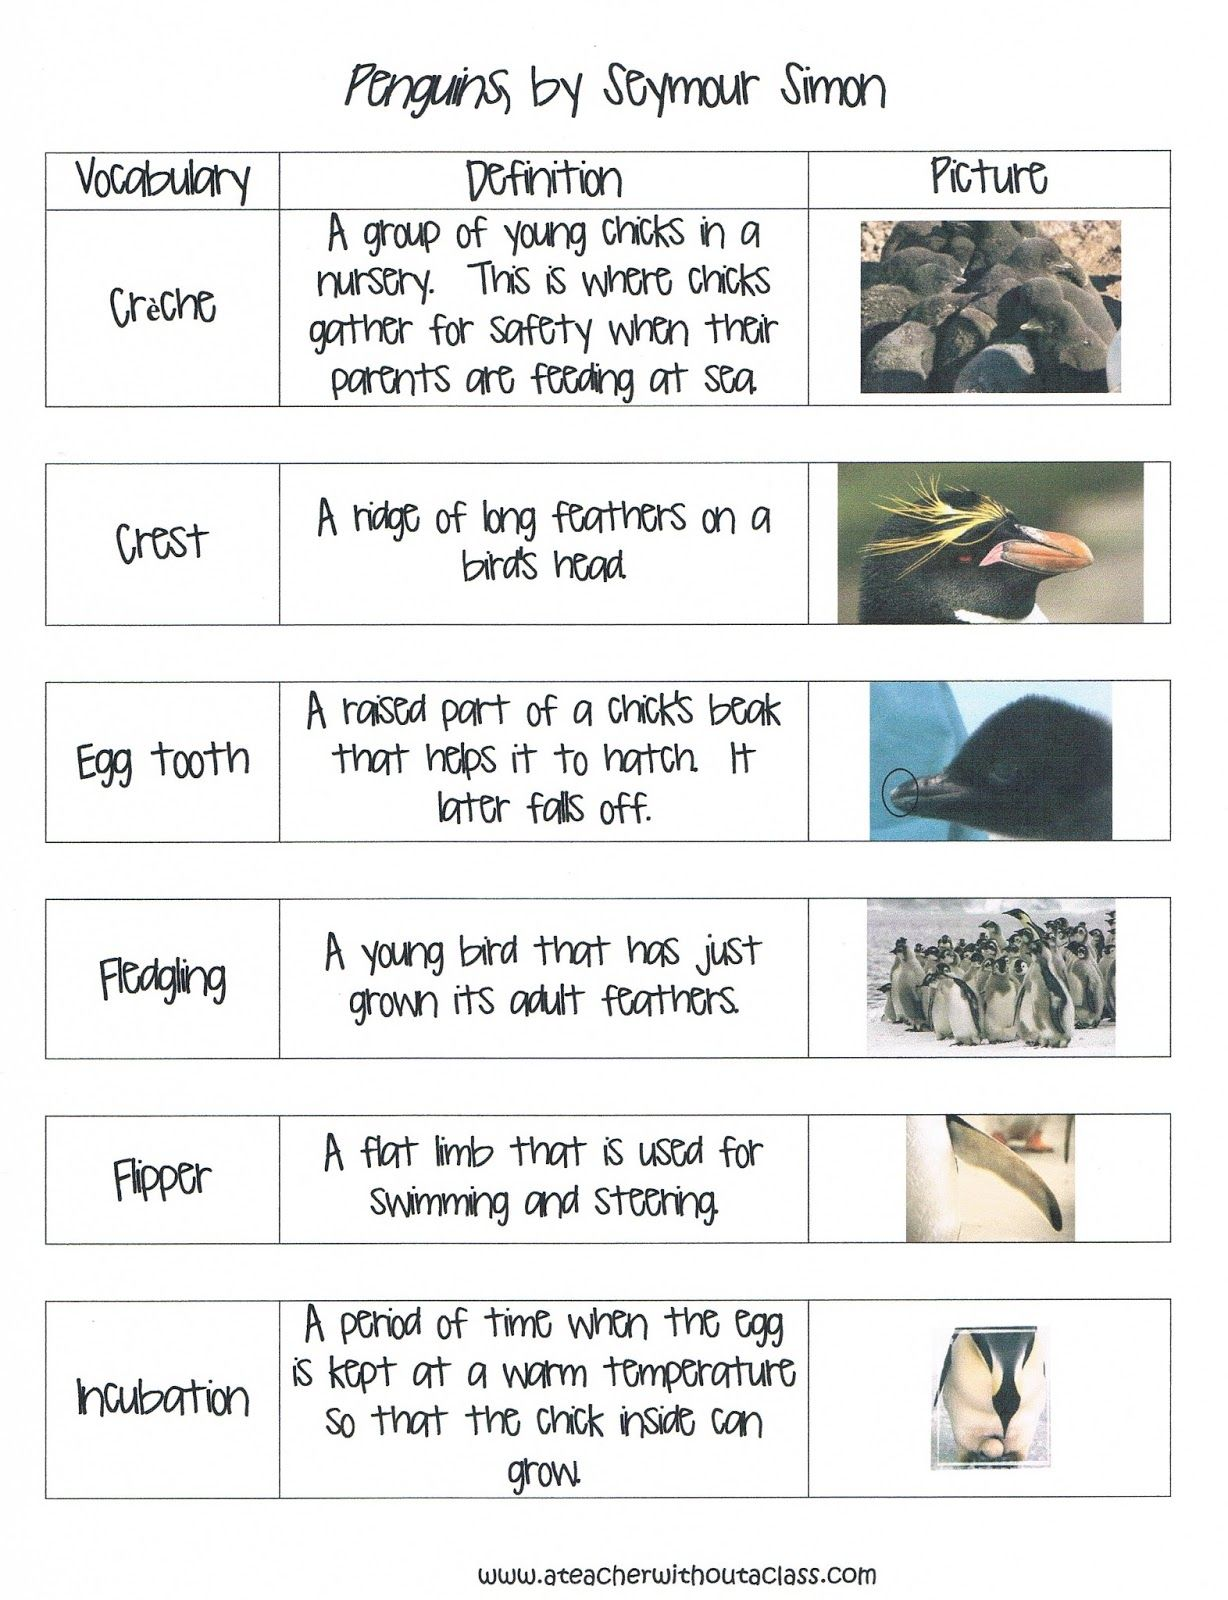 Penguin Vocabulary